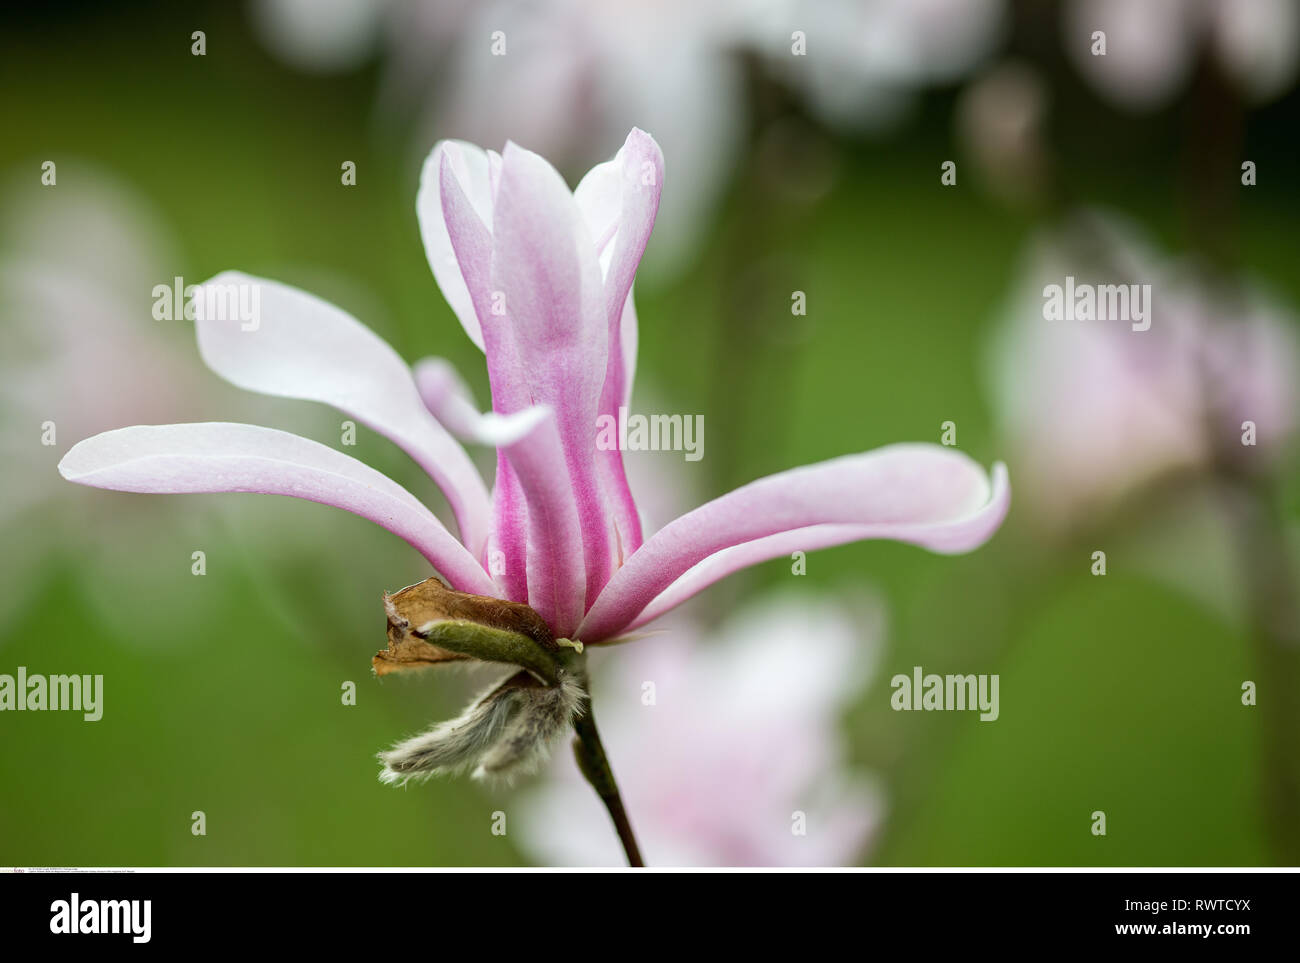 botany, blossom of the magnolia sort ' Messel', Caution!For Greetingcard-Use/Postcard-Use In German Speaking Countries Certain Restrictions May Apply - Stock Image